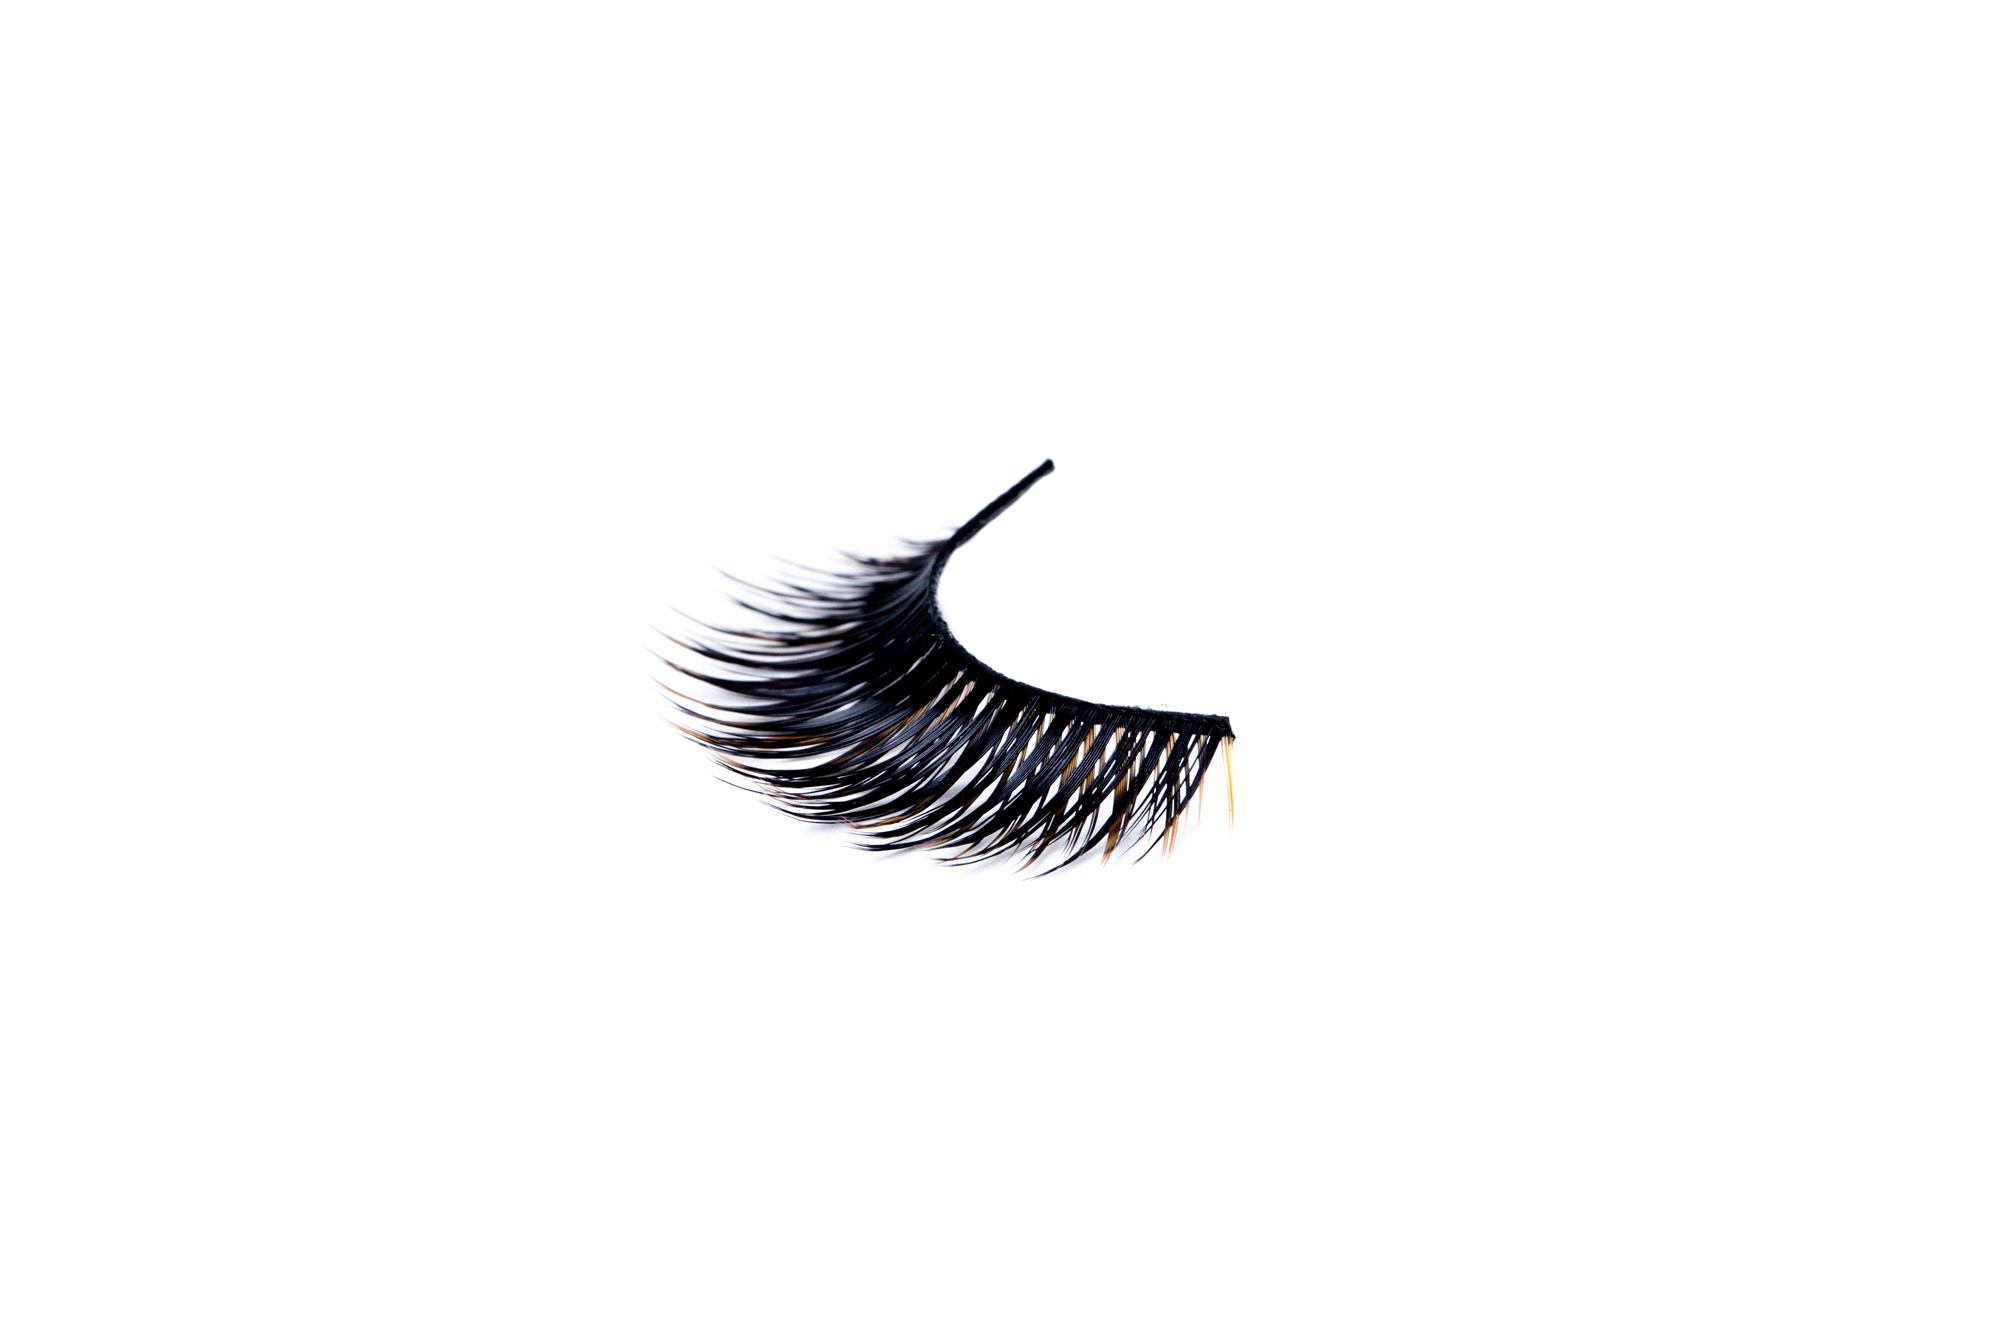 Geoff Kowalchuk Beauty Convict Lashes-009.jpg